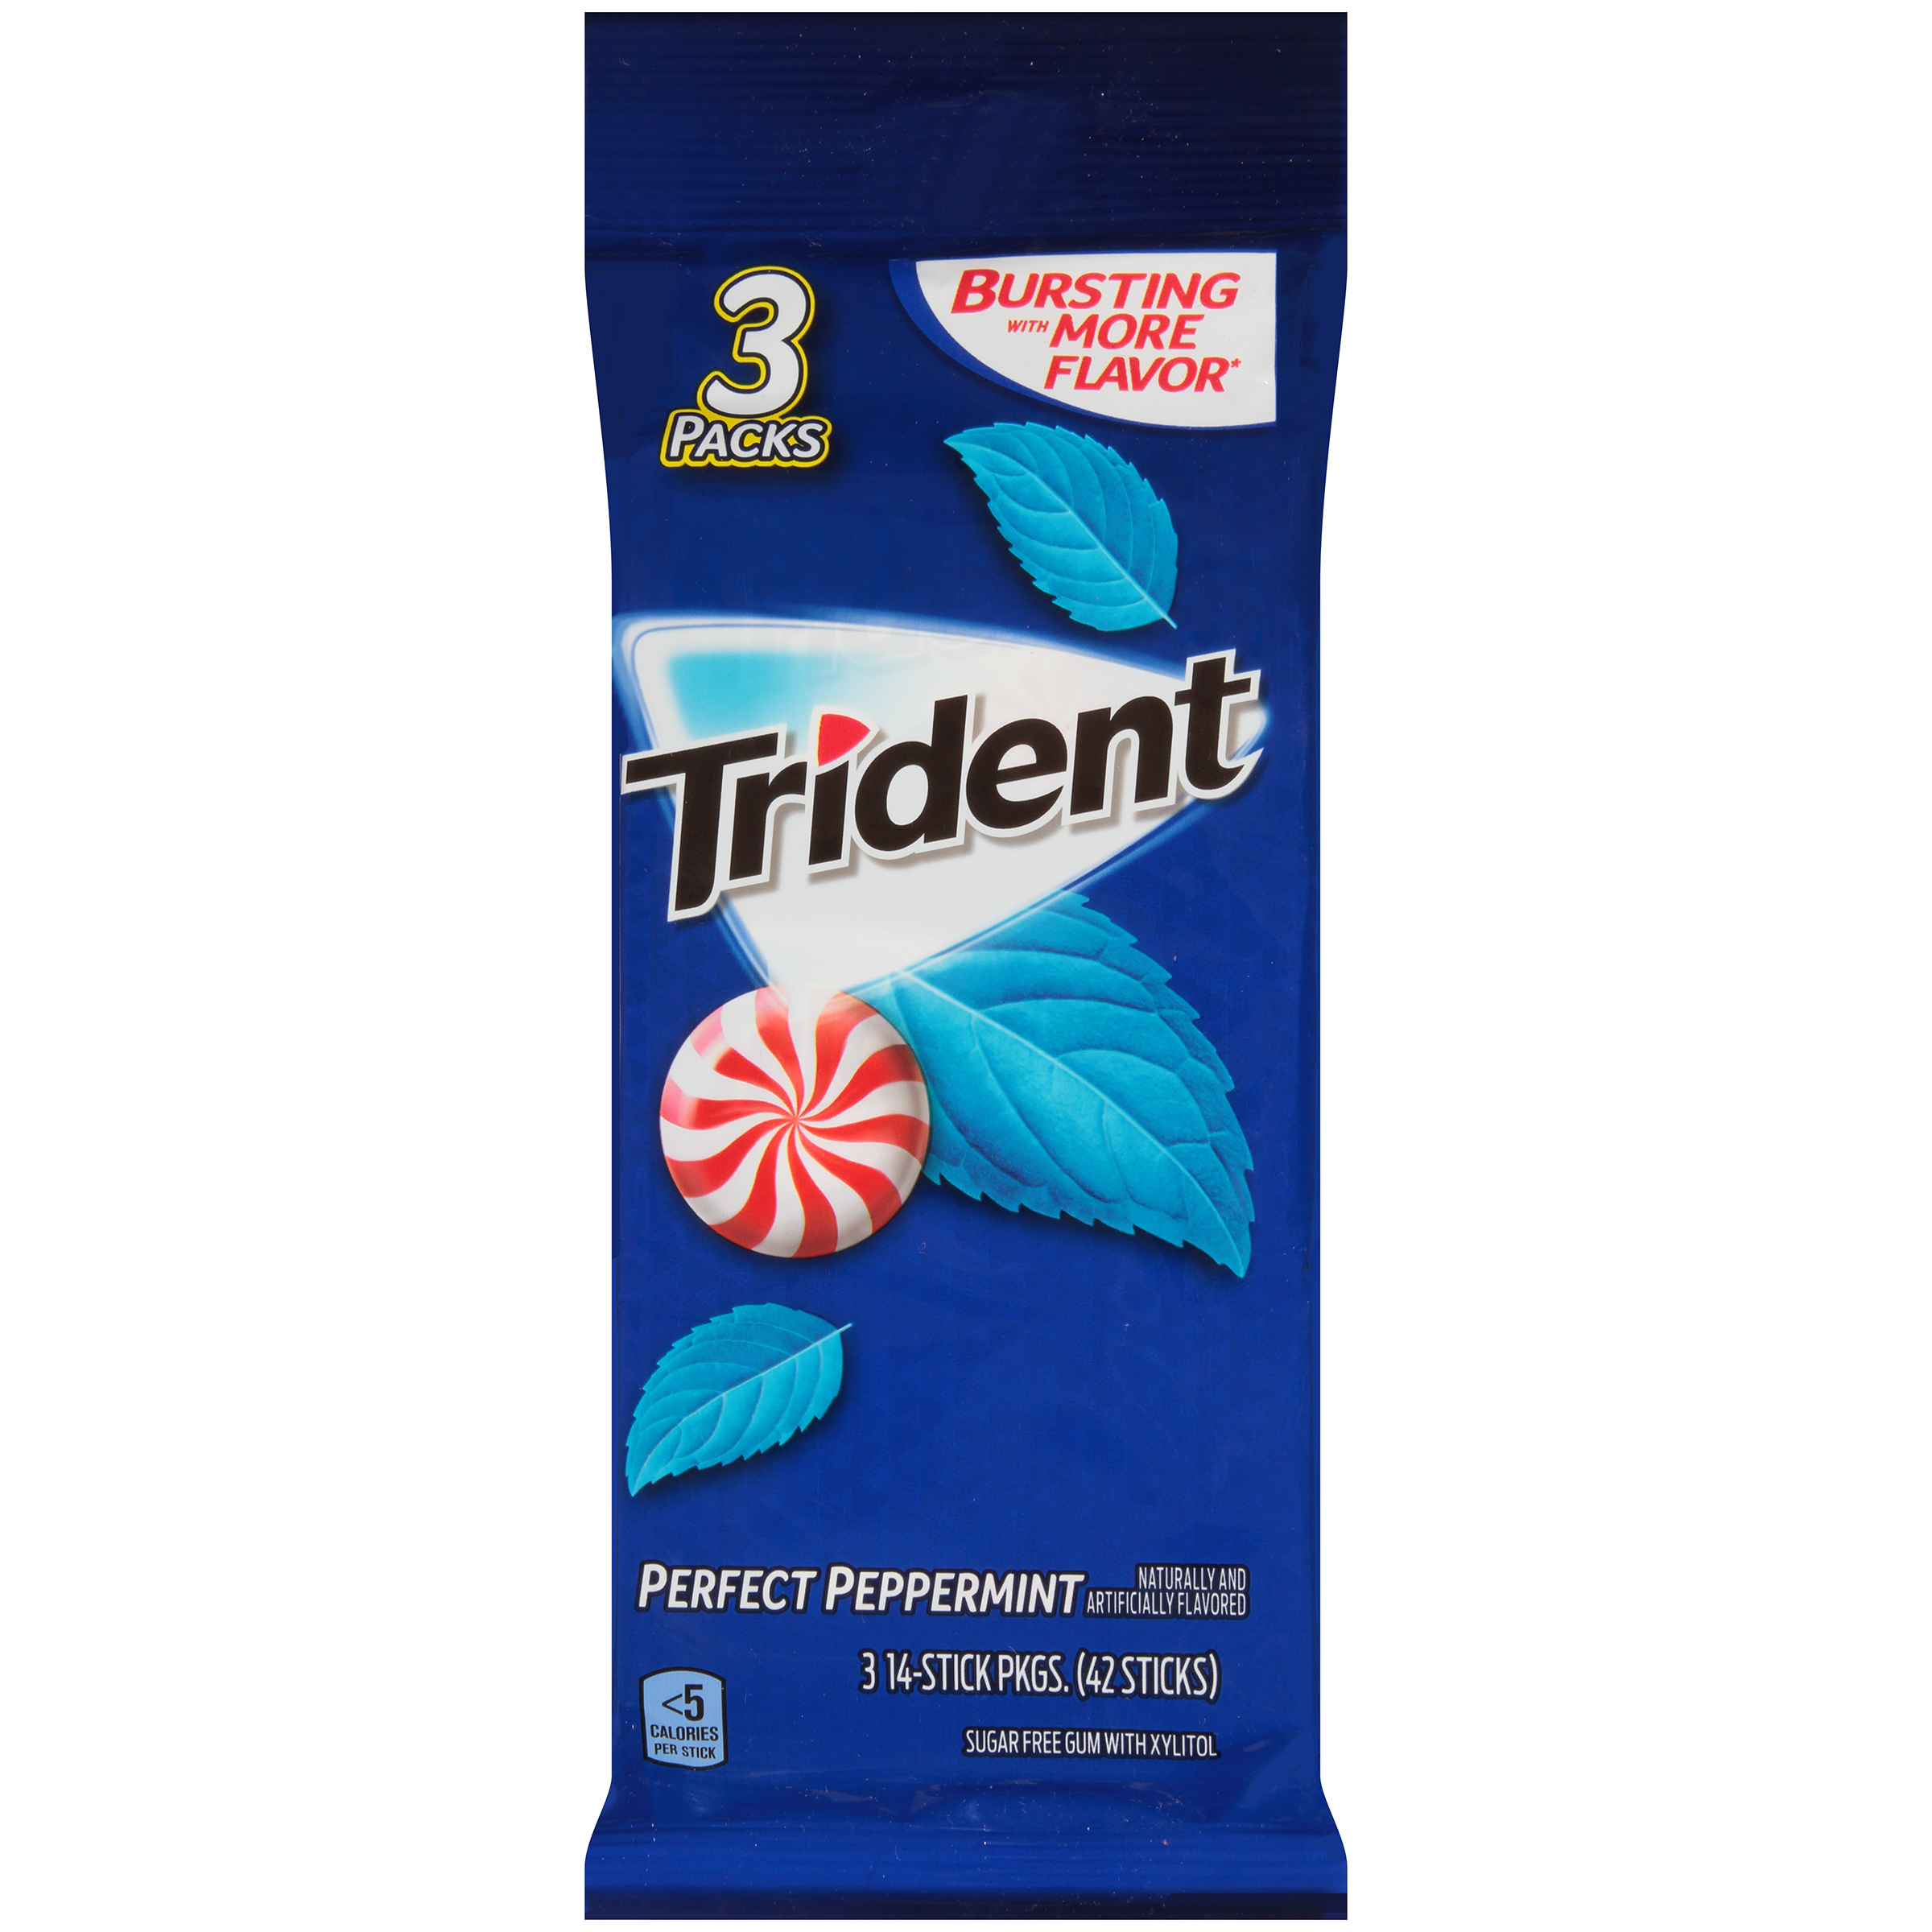 Trident Sugar-Free Perfect Peppermint Flavor Gum, 14 Pieces, 3 Count